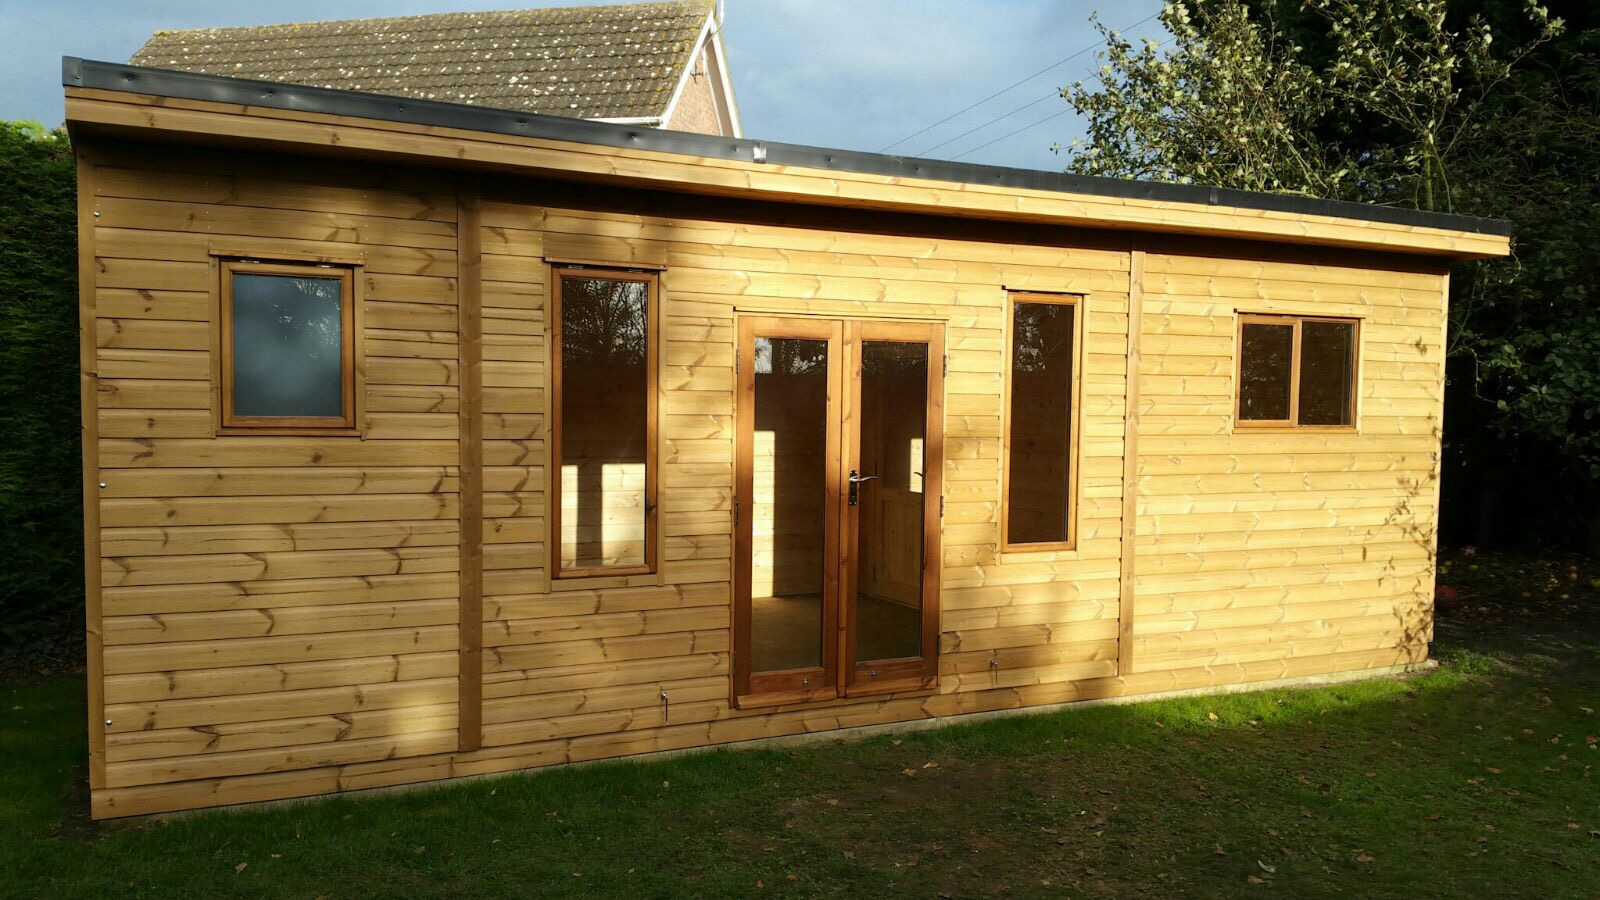 7.2M x 3M Thermowood Garden Room incorporating an ensuite bathroom, livving room and bedroom. Joinery windows and doors and EPDM roof with a 300mm overhang.JPG